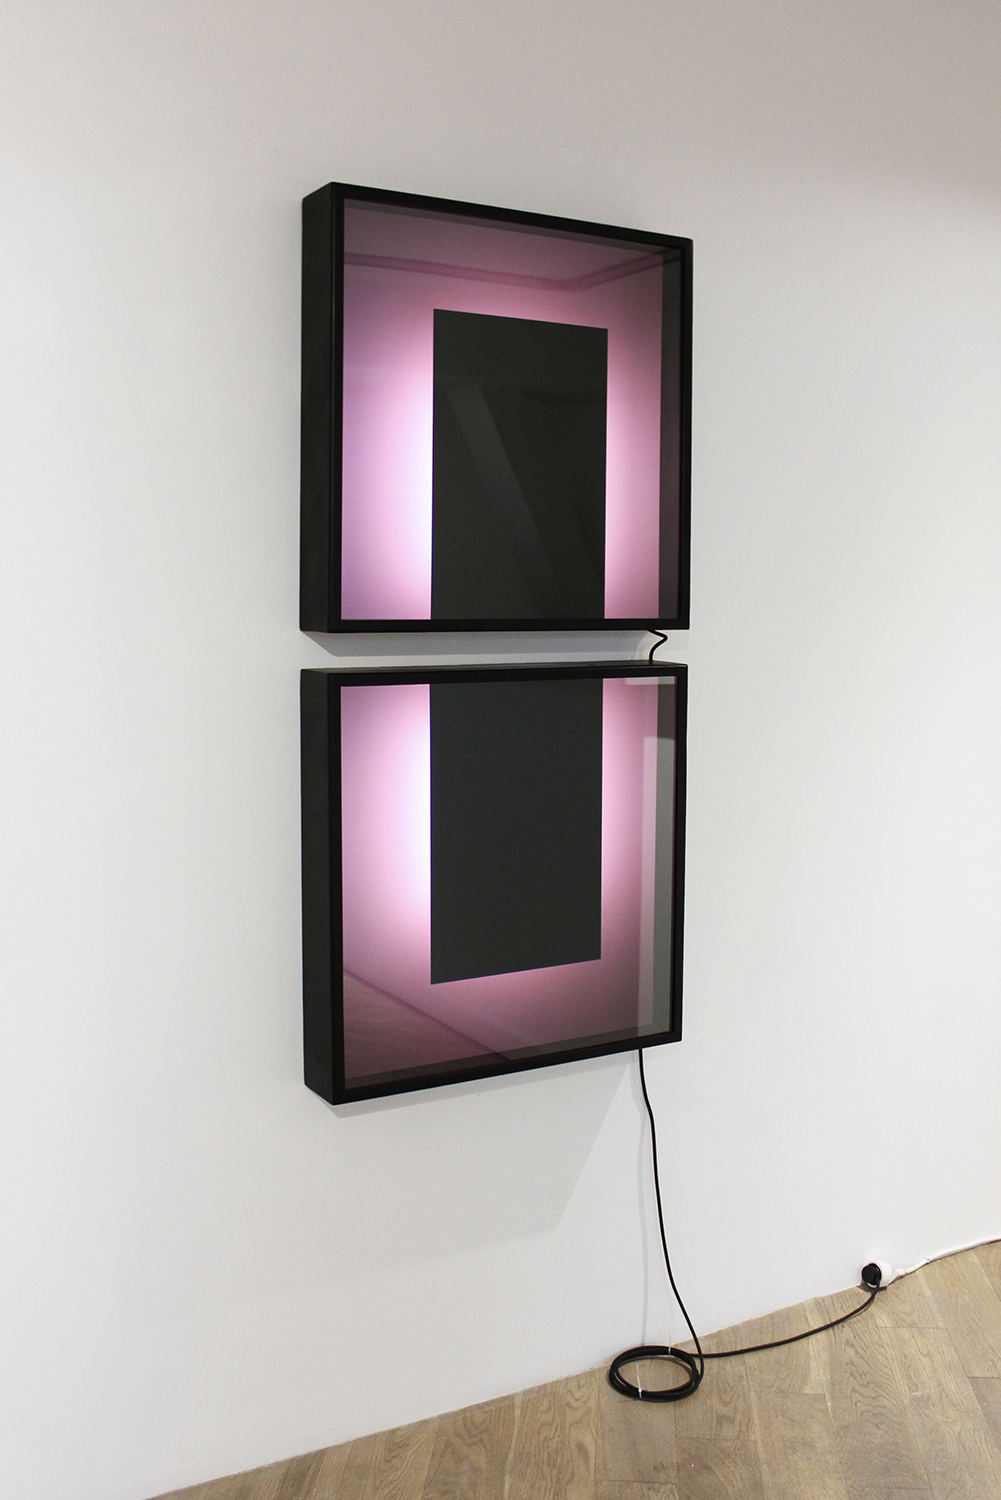 Deux remarques concernant les tableaux, et deux remarques encore, deux remarques de plus, mais celles-là de caractère général, 2017, one way mirror, led tubes, color filters, adhesive vinyls, aluminium, paint, 127 x 60 x 10 cm